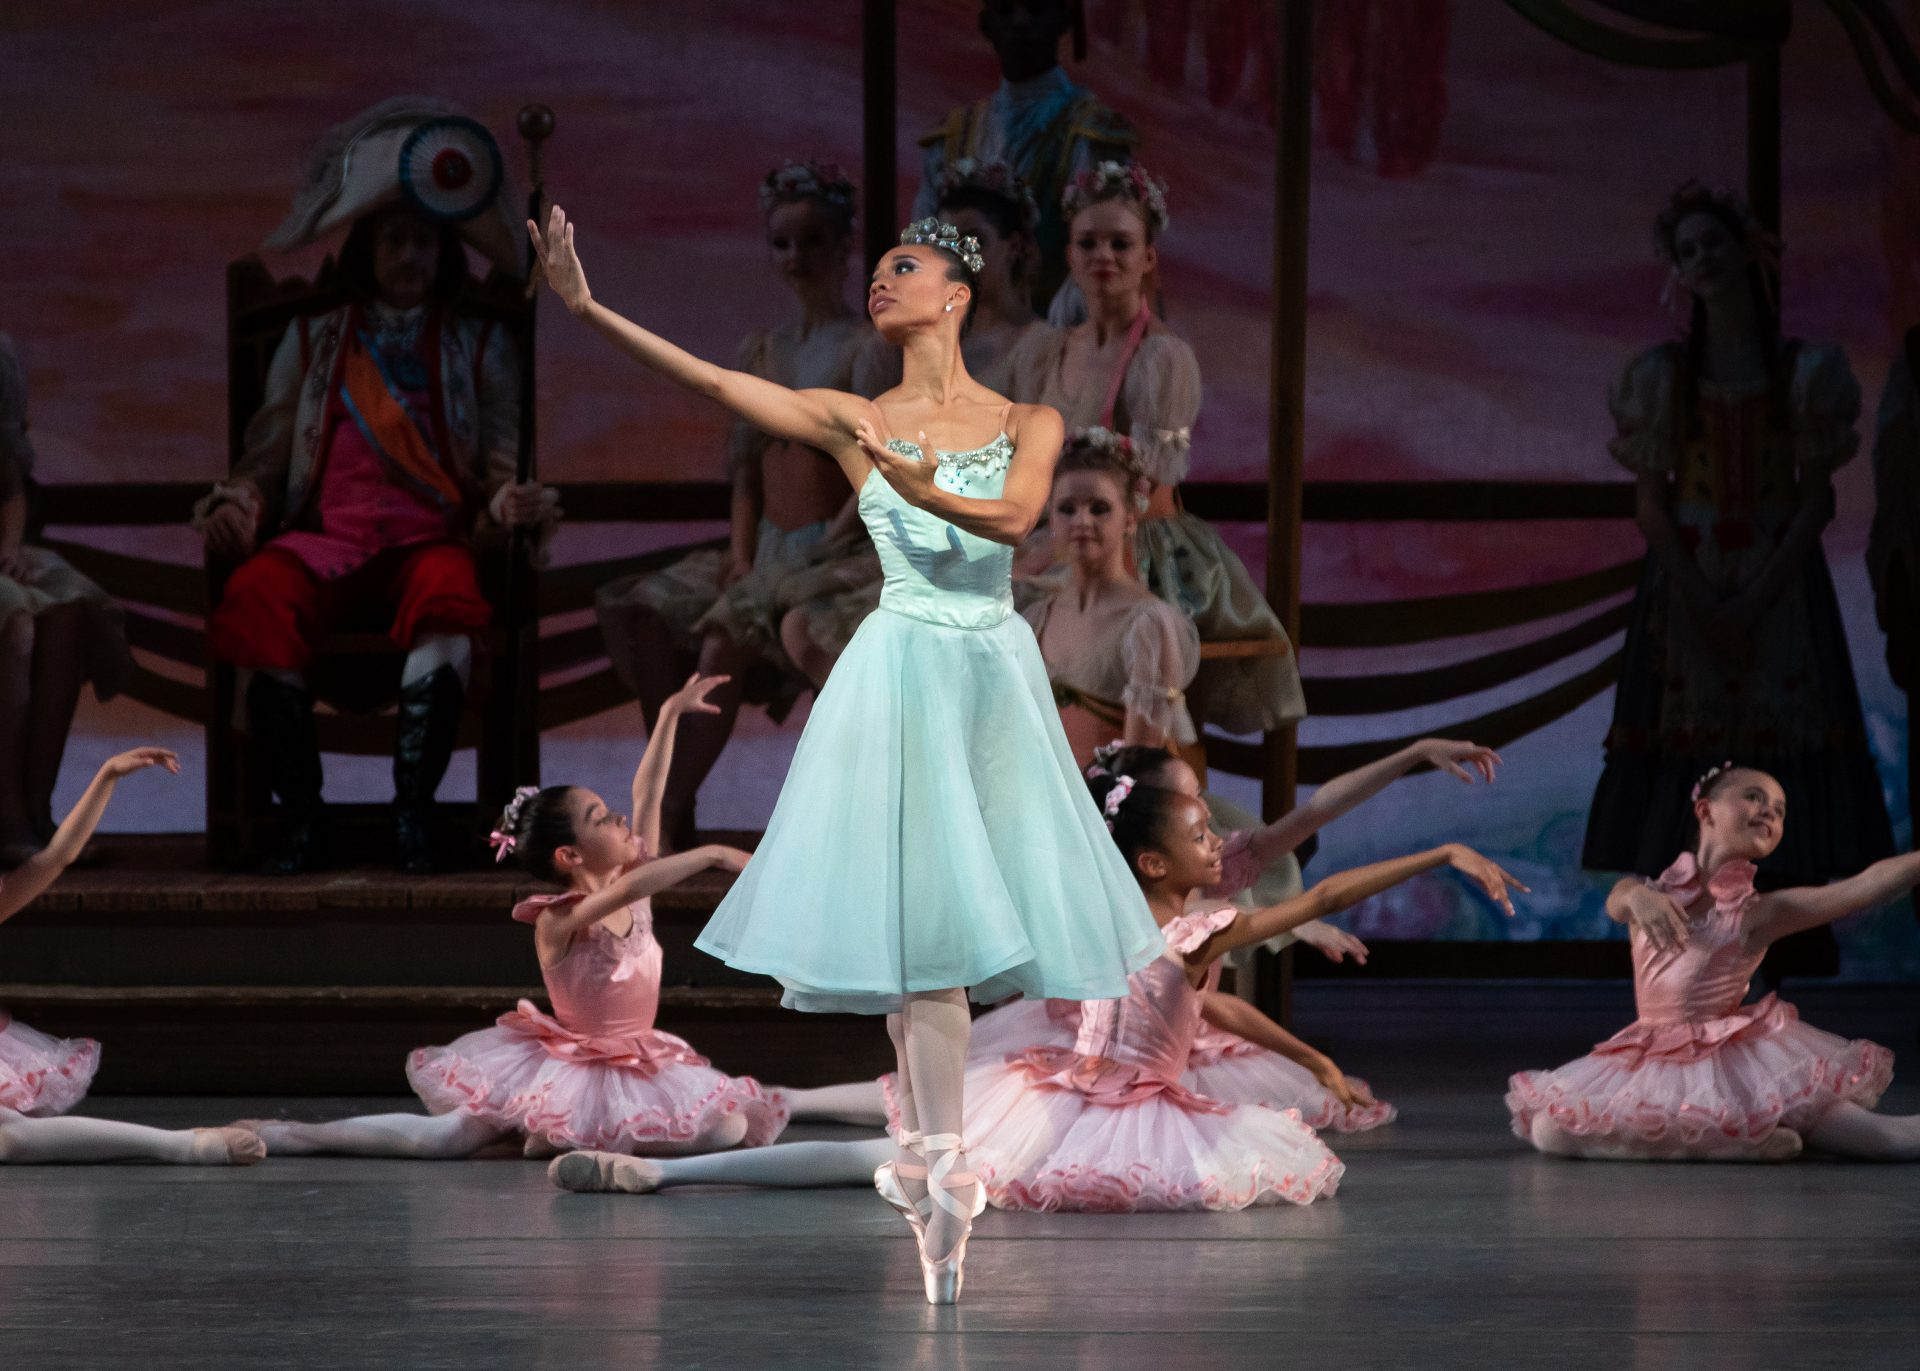 """Olivia Boisson and students from the School of American Ballet in New York City Ballet's production of """"Coppelia"""" Photo by Erin Baiano"""